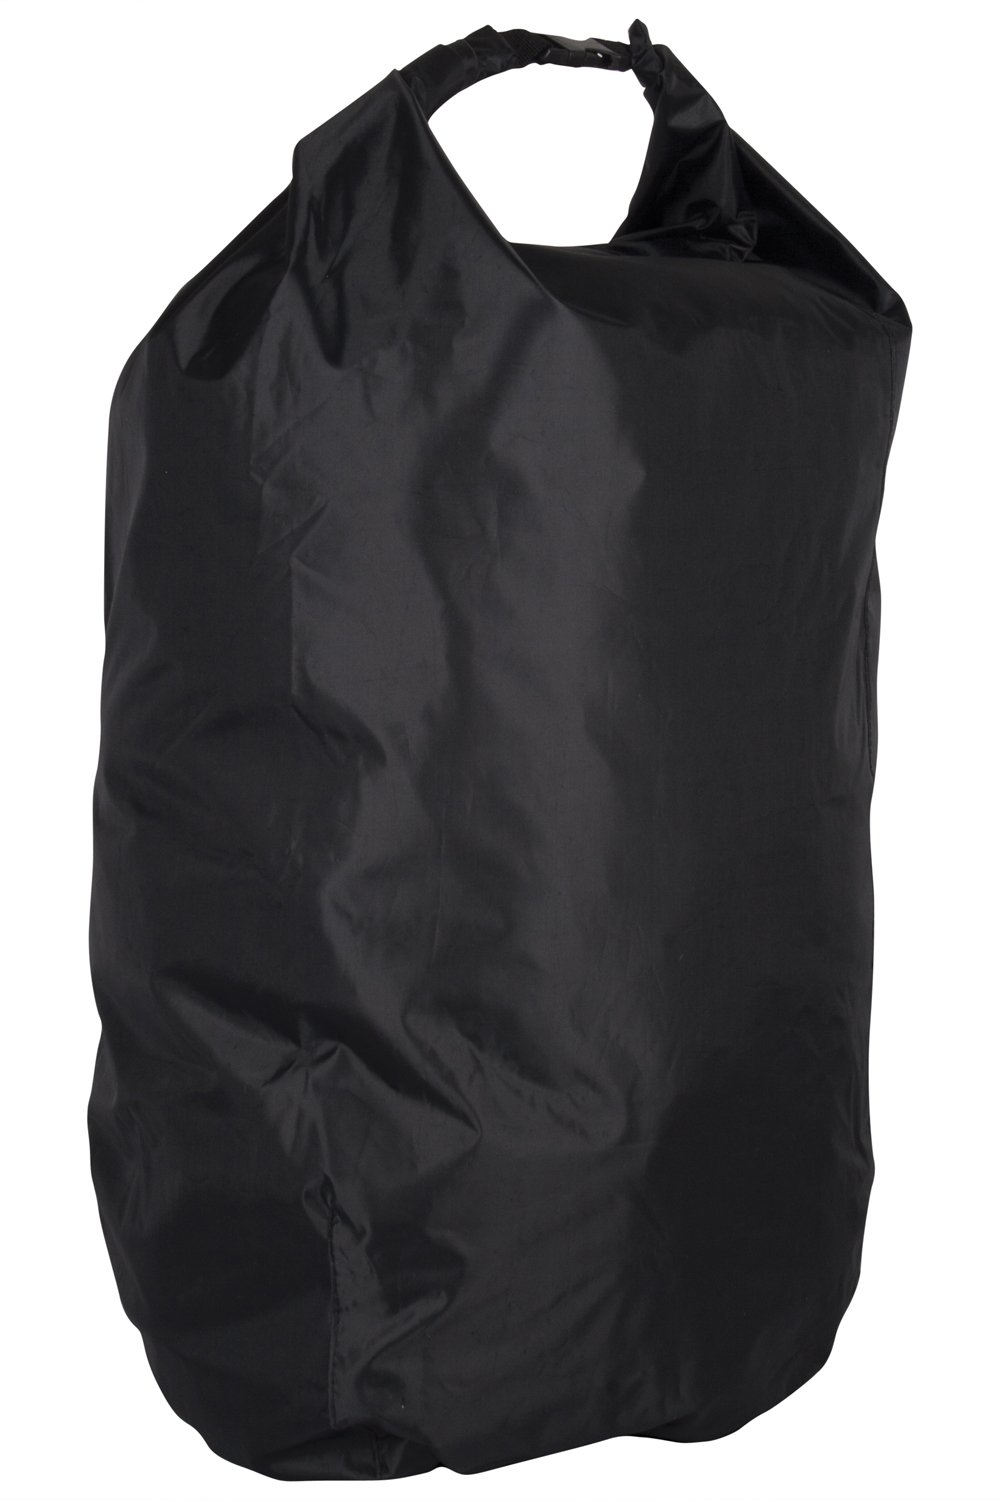 723c8aca41a5 Amazon.com   Mountain Warehouse Large Dry Pack Liner - 80L ...